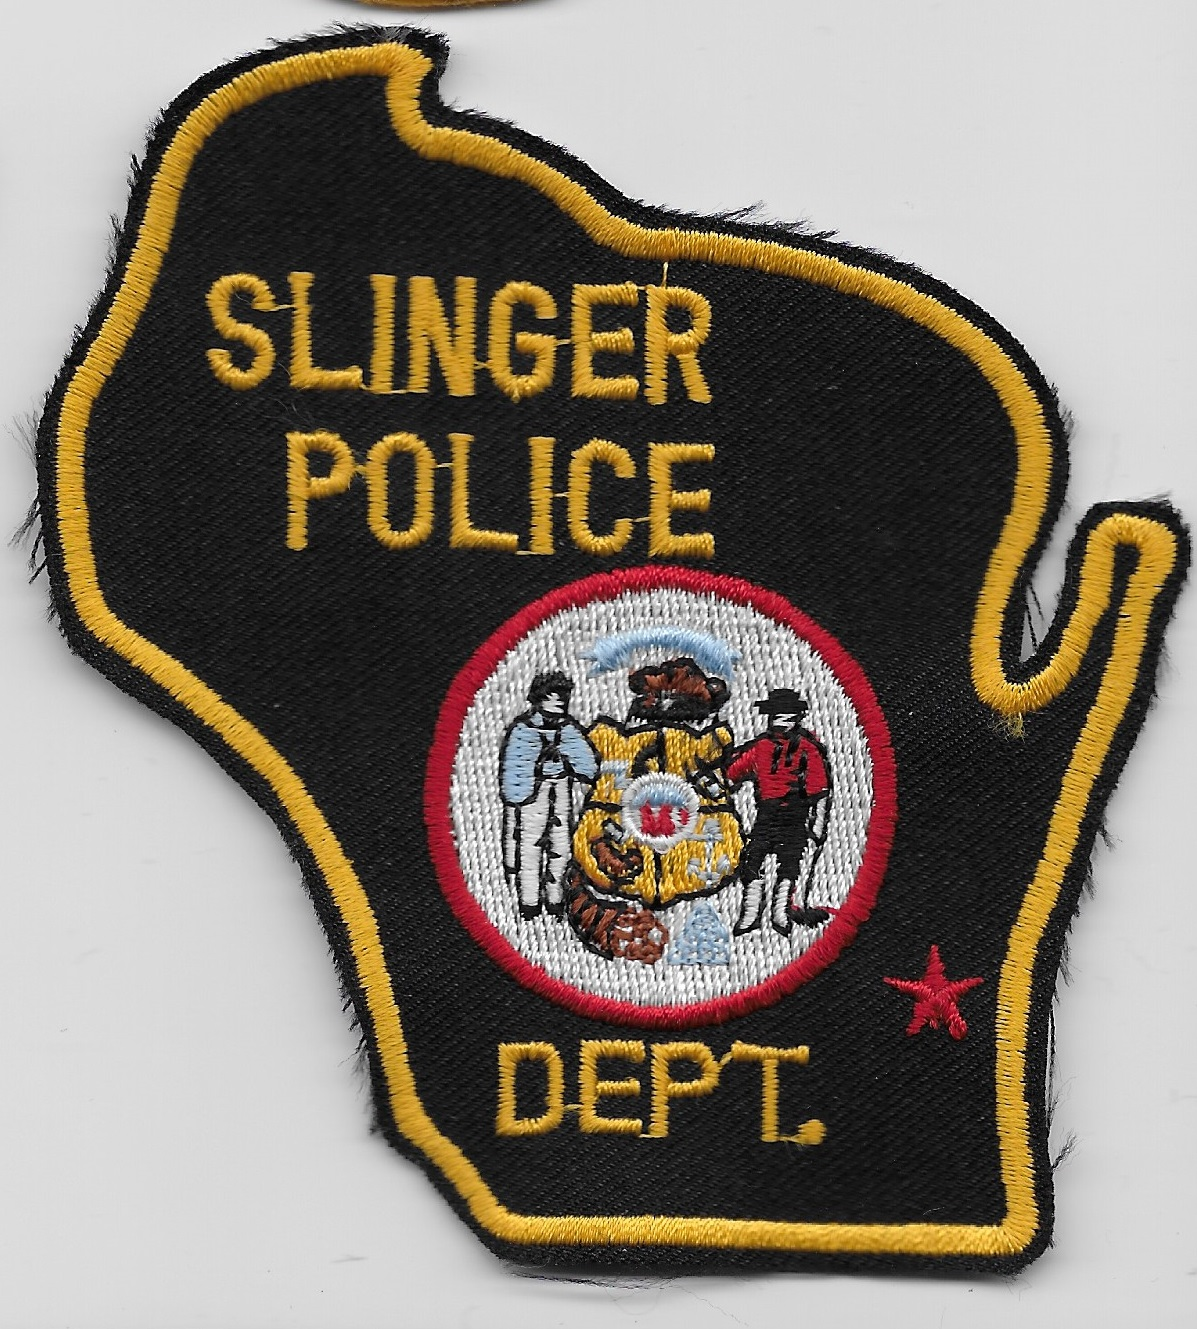 Slinger Police WI State Shaped